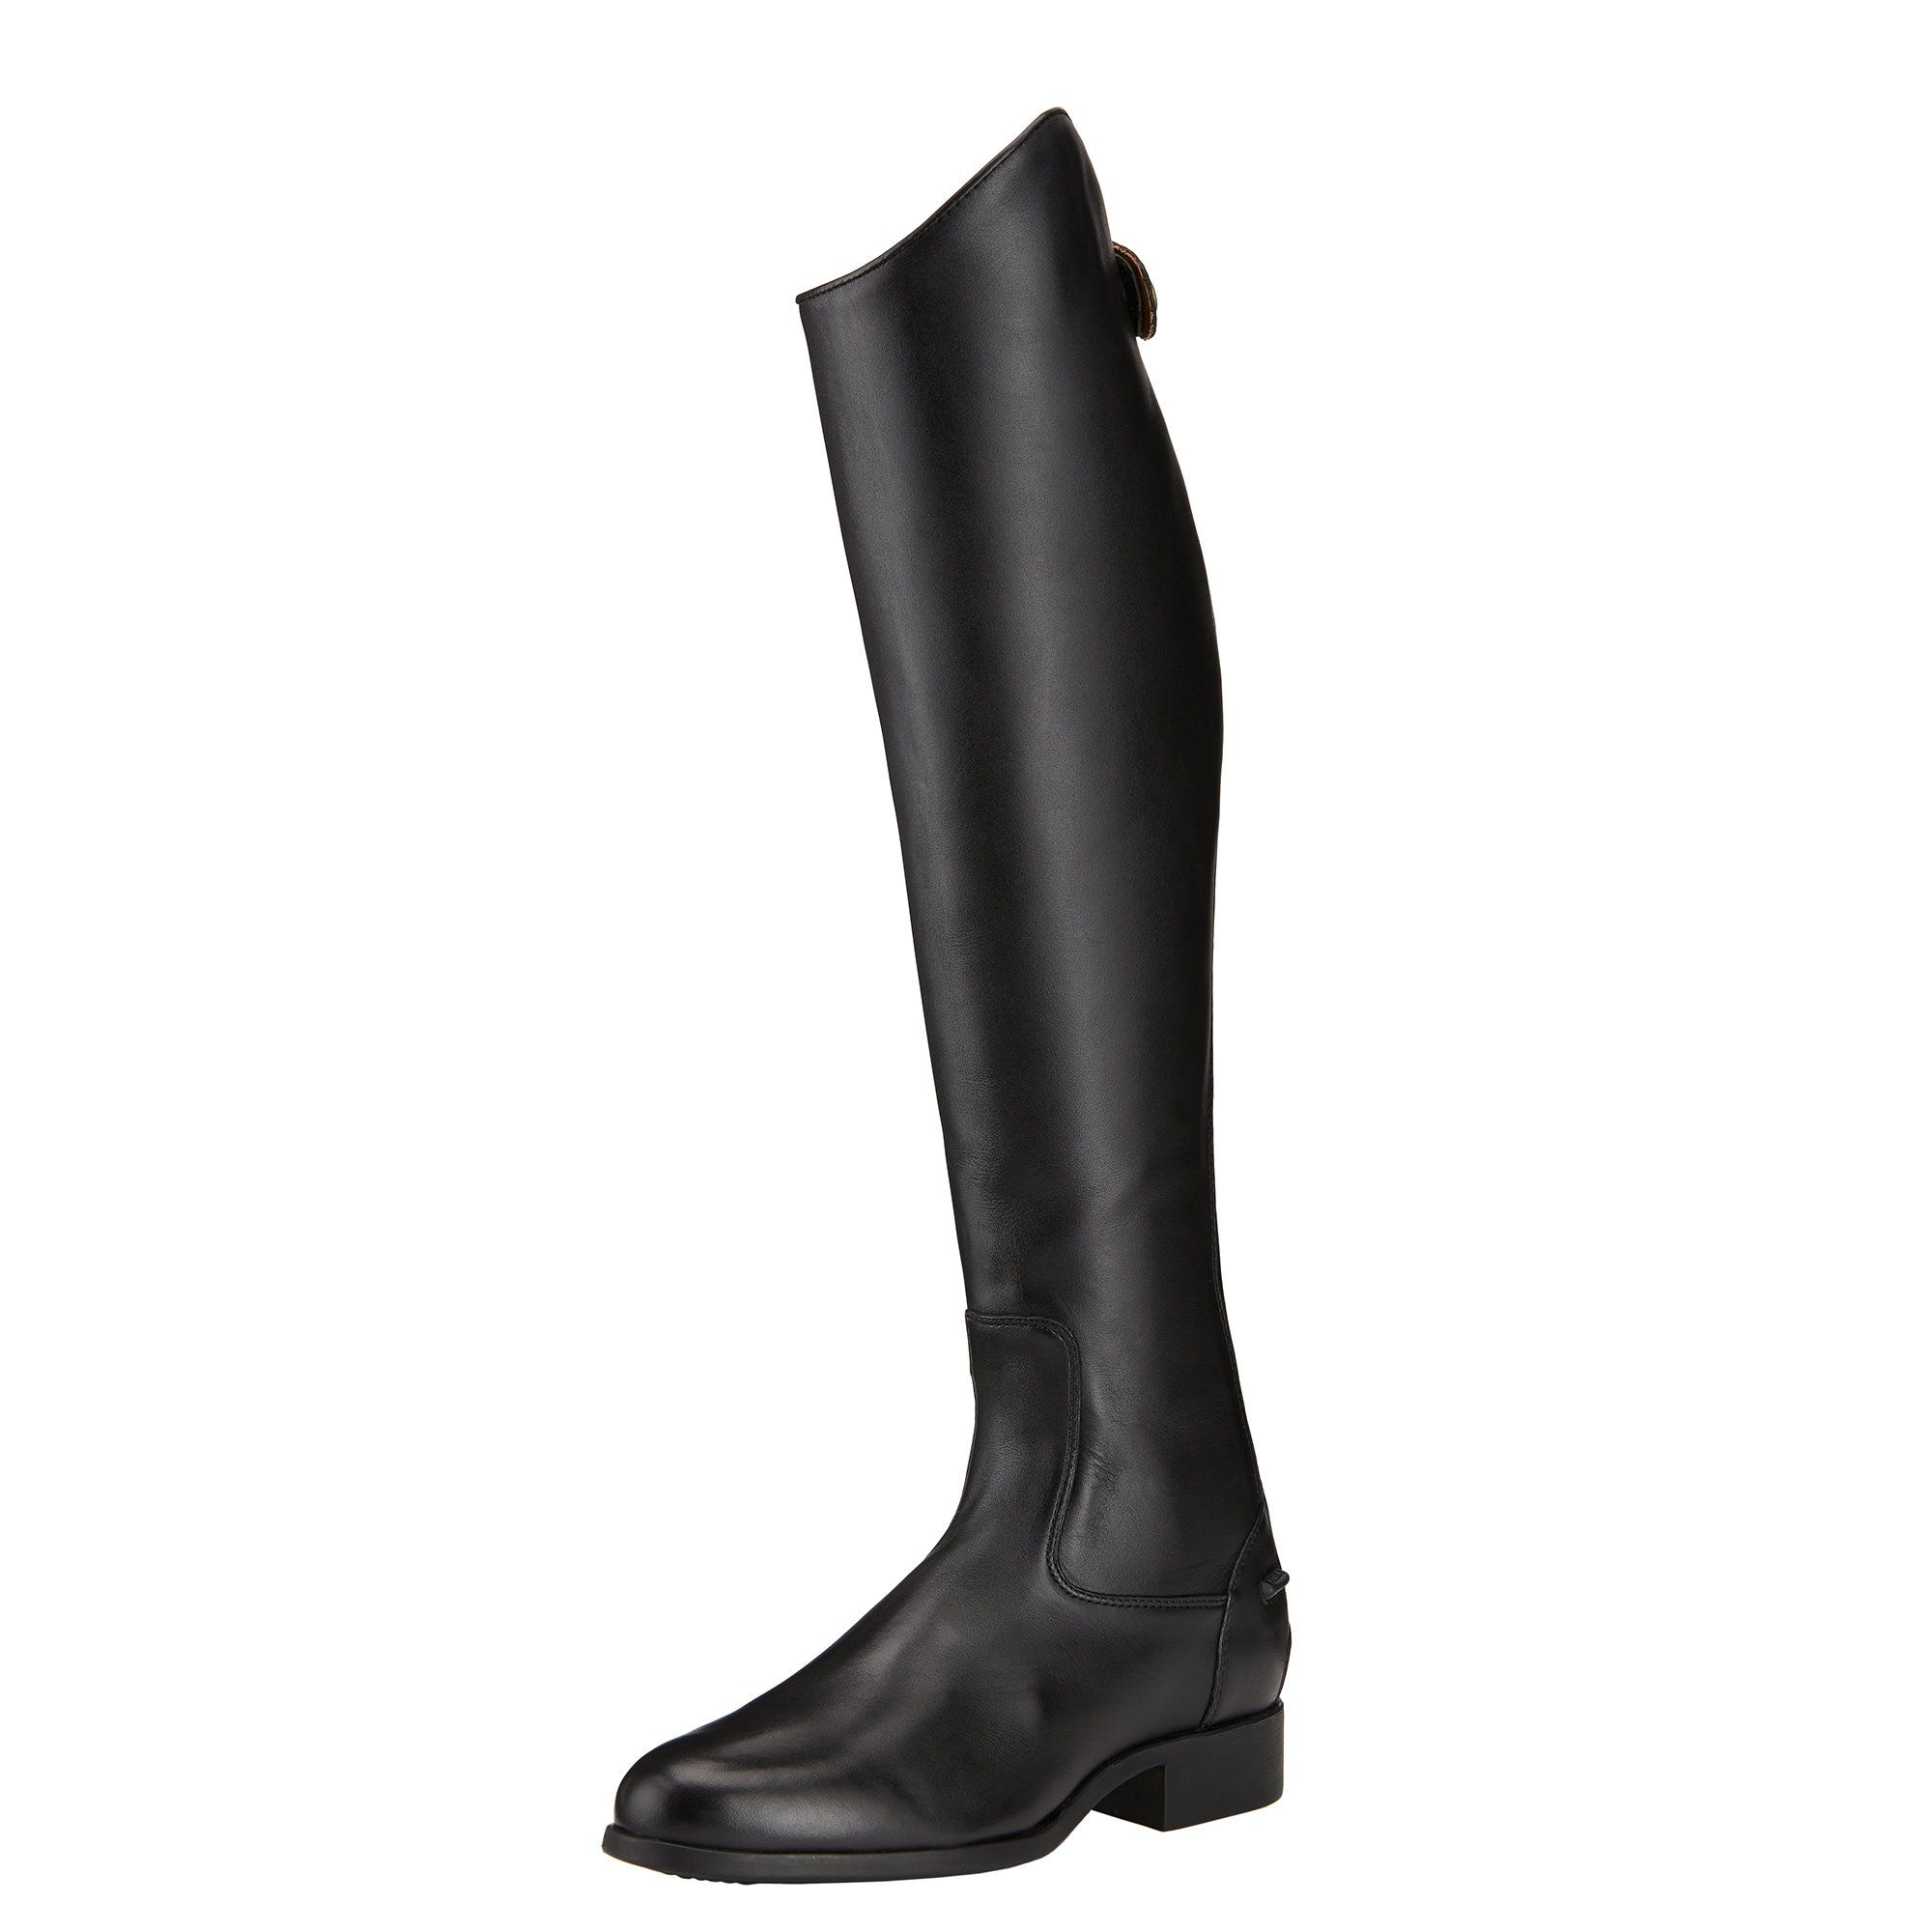 Women's Heritage Contour Dress Zip Tall Riding Boots in Black Leather, size 6.5 B / Medium X-Slim by Ariat